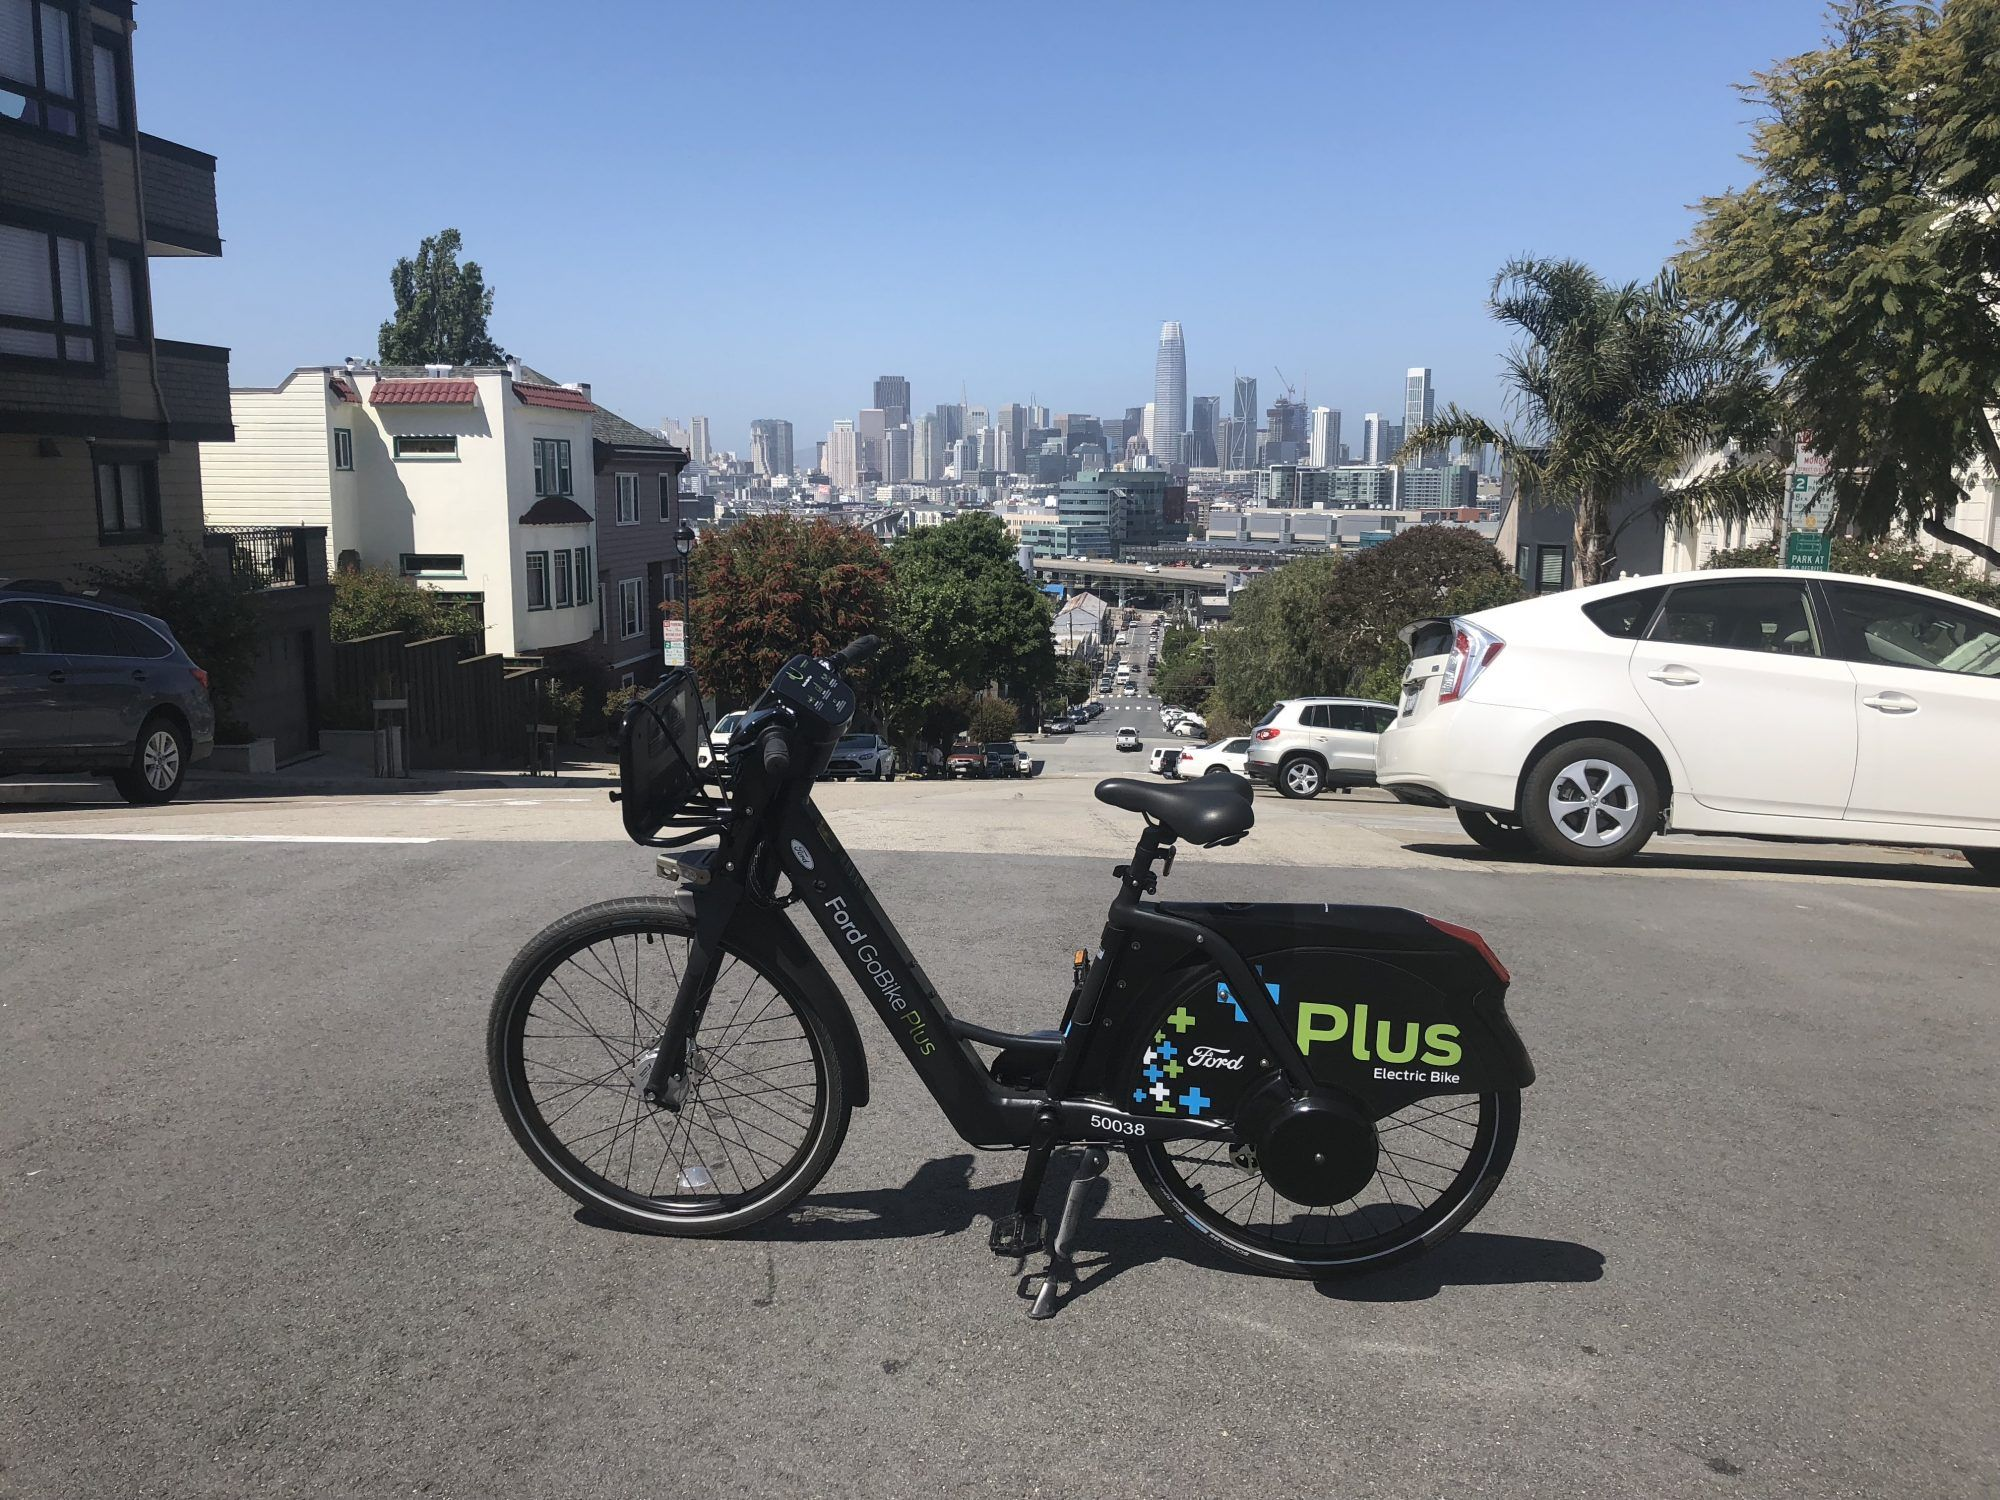 Lyft Is Reportedly Close To Buying The Company Behind Ford Gobike And Citi Bike Techcrunch Ford City Bike Electricity